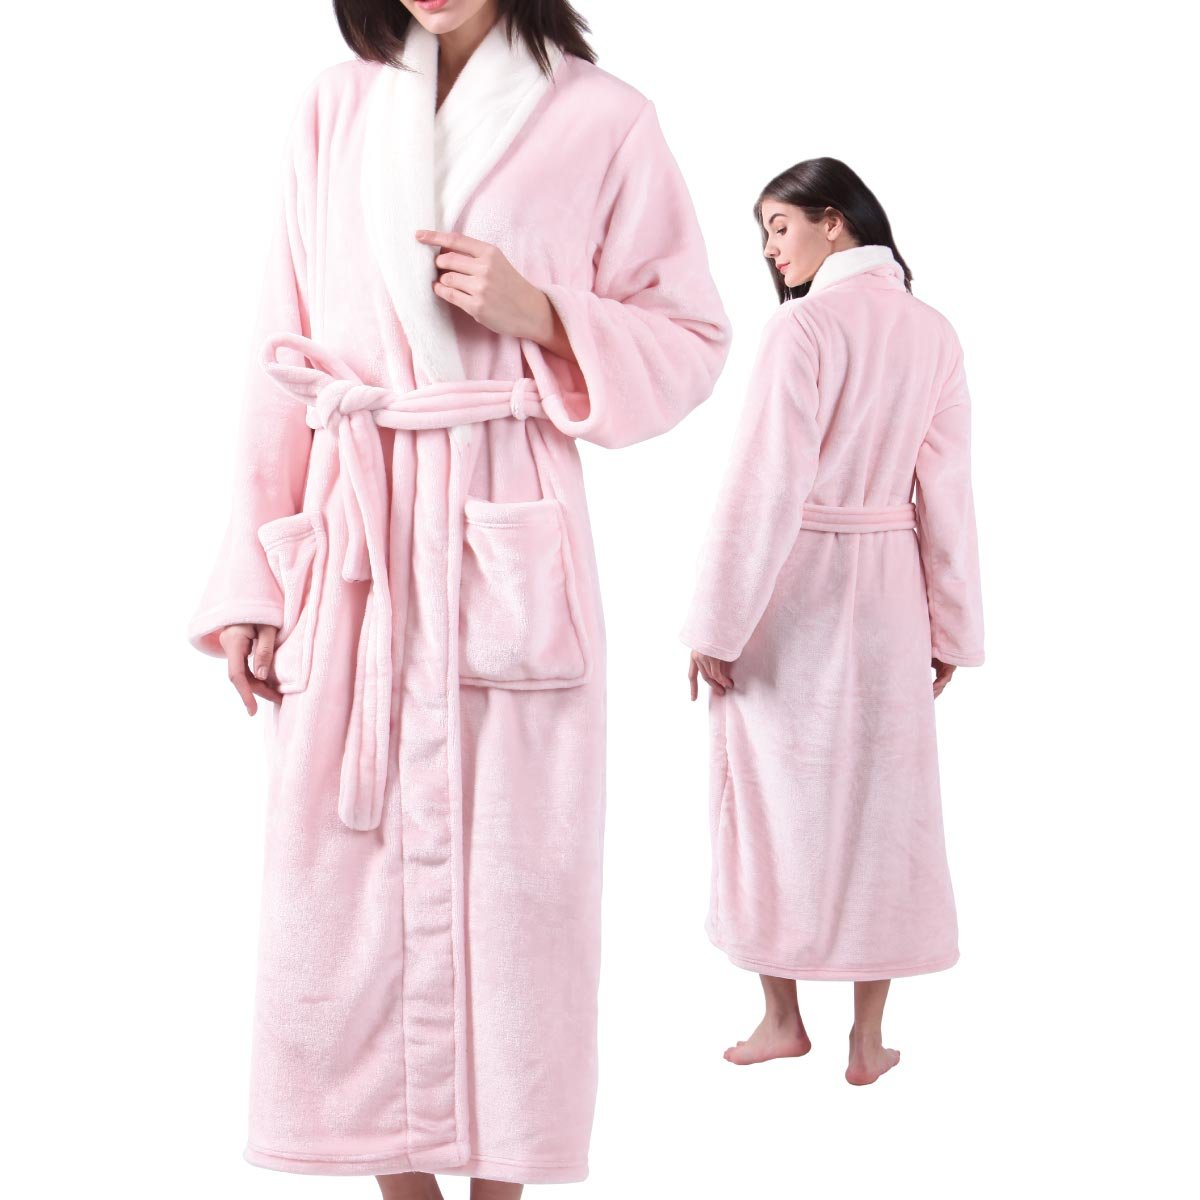 931f7fbc29 Womens Fleece Flannel Plush Bathrobe